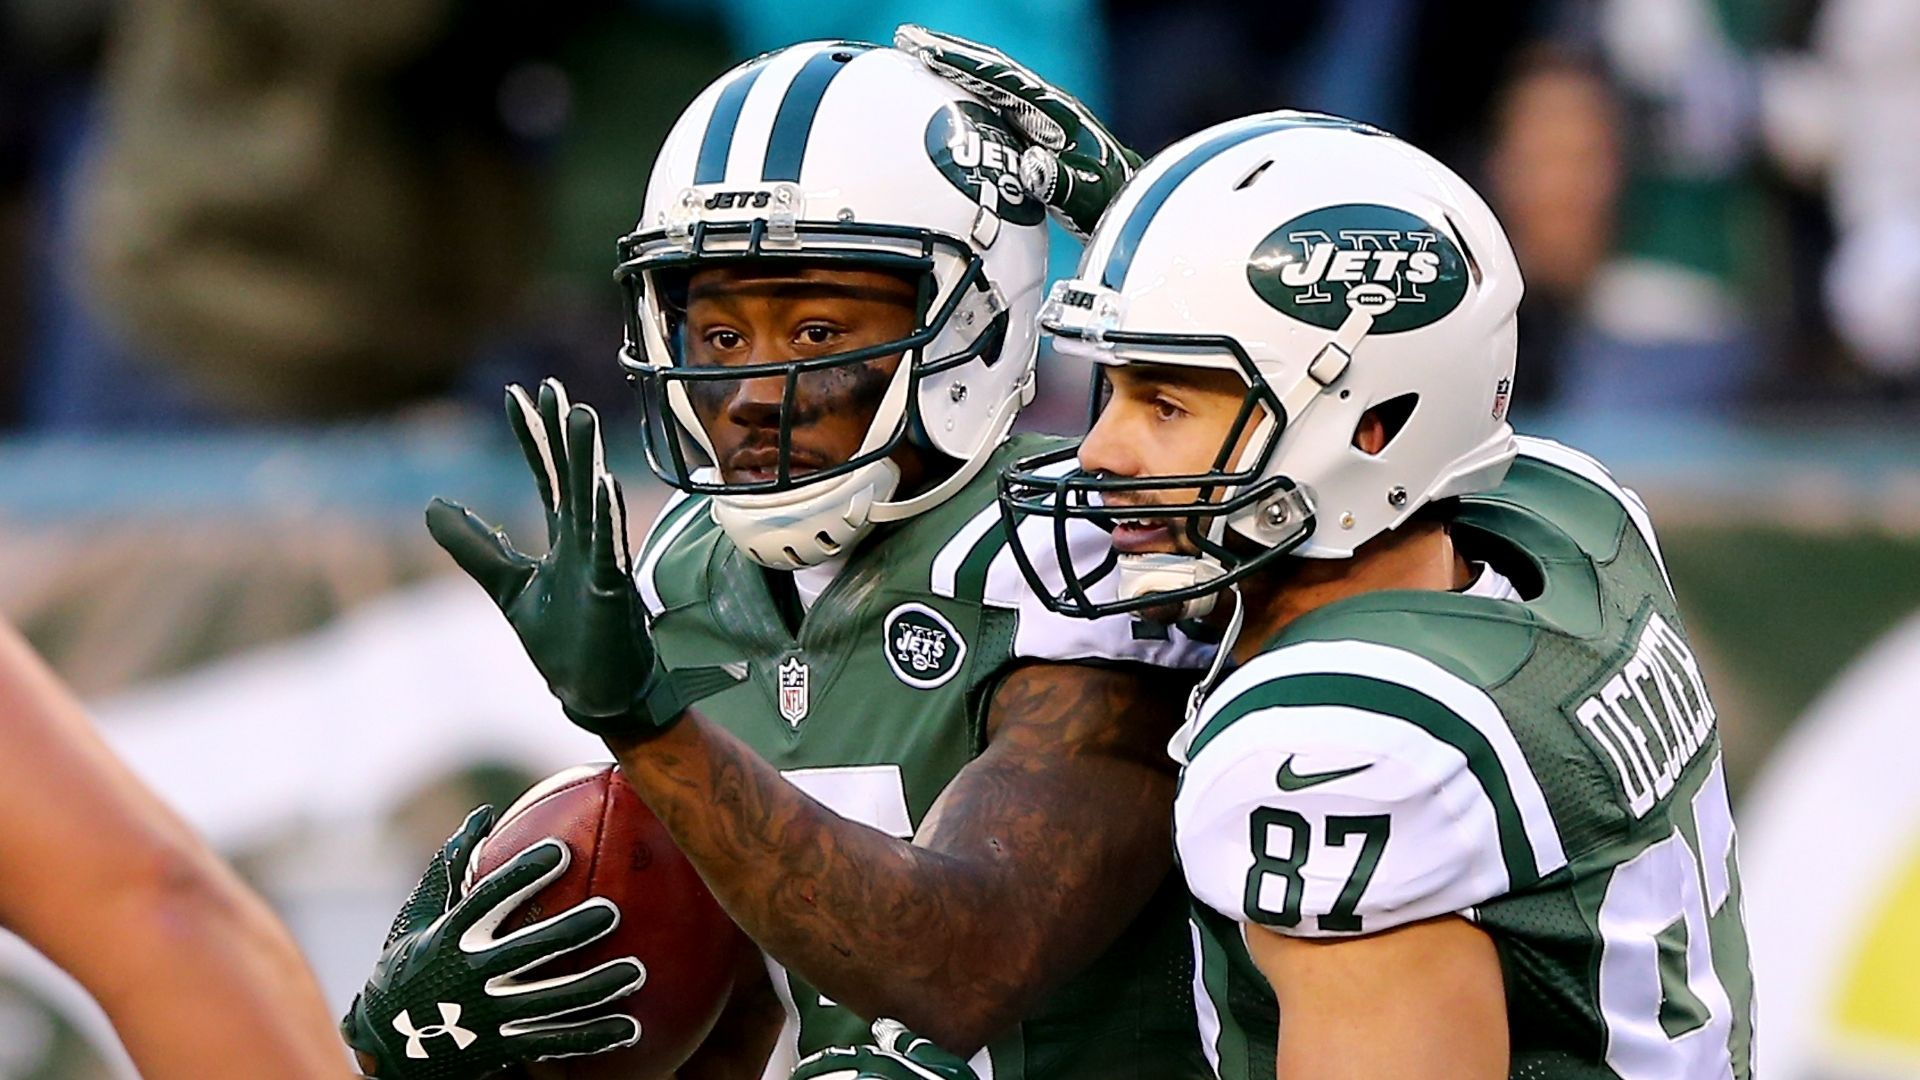 Golic: Marshall, Decker protests 'accomplished nothing'